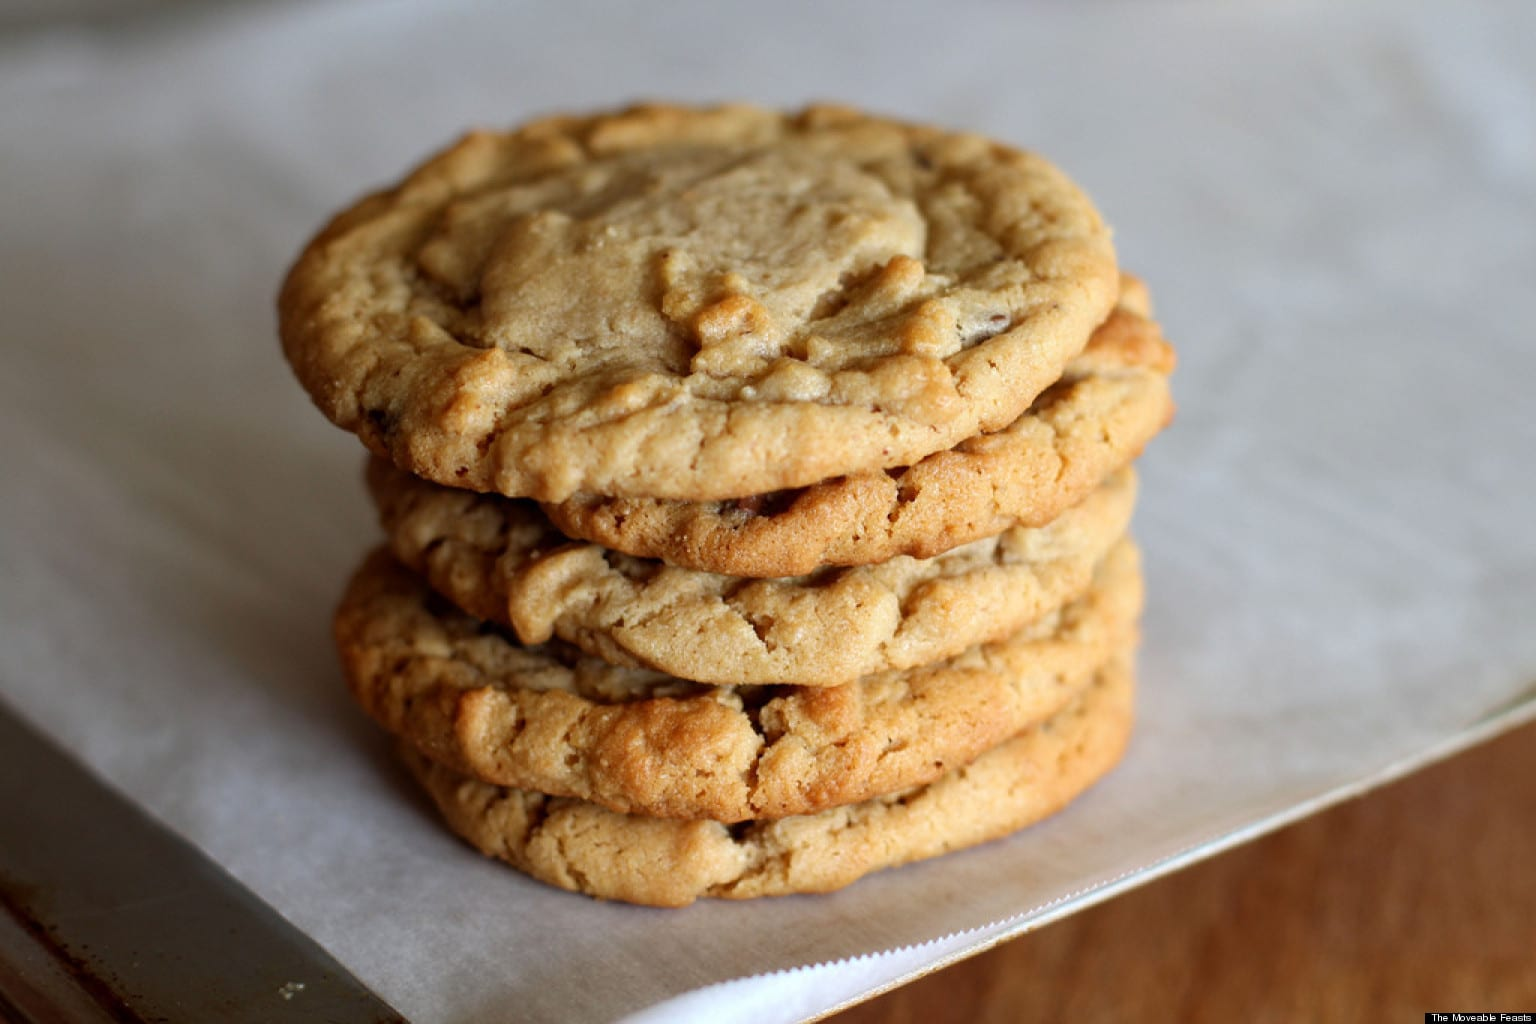 Peanut Butter Cookie Recipes To Try On National Peanut Butter